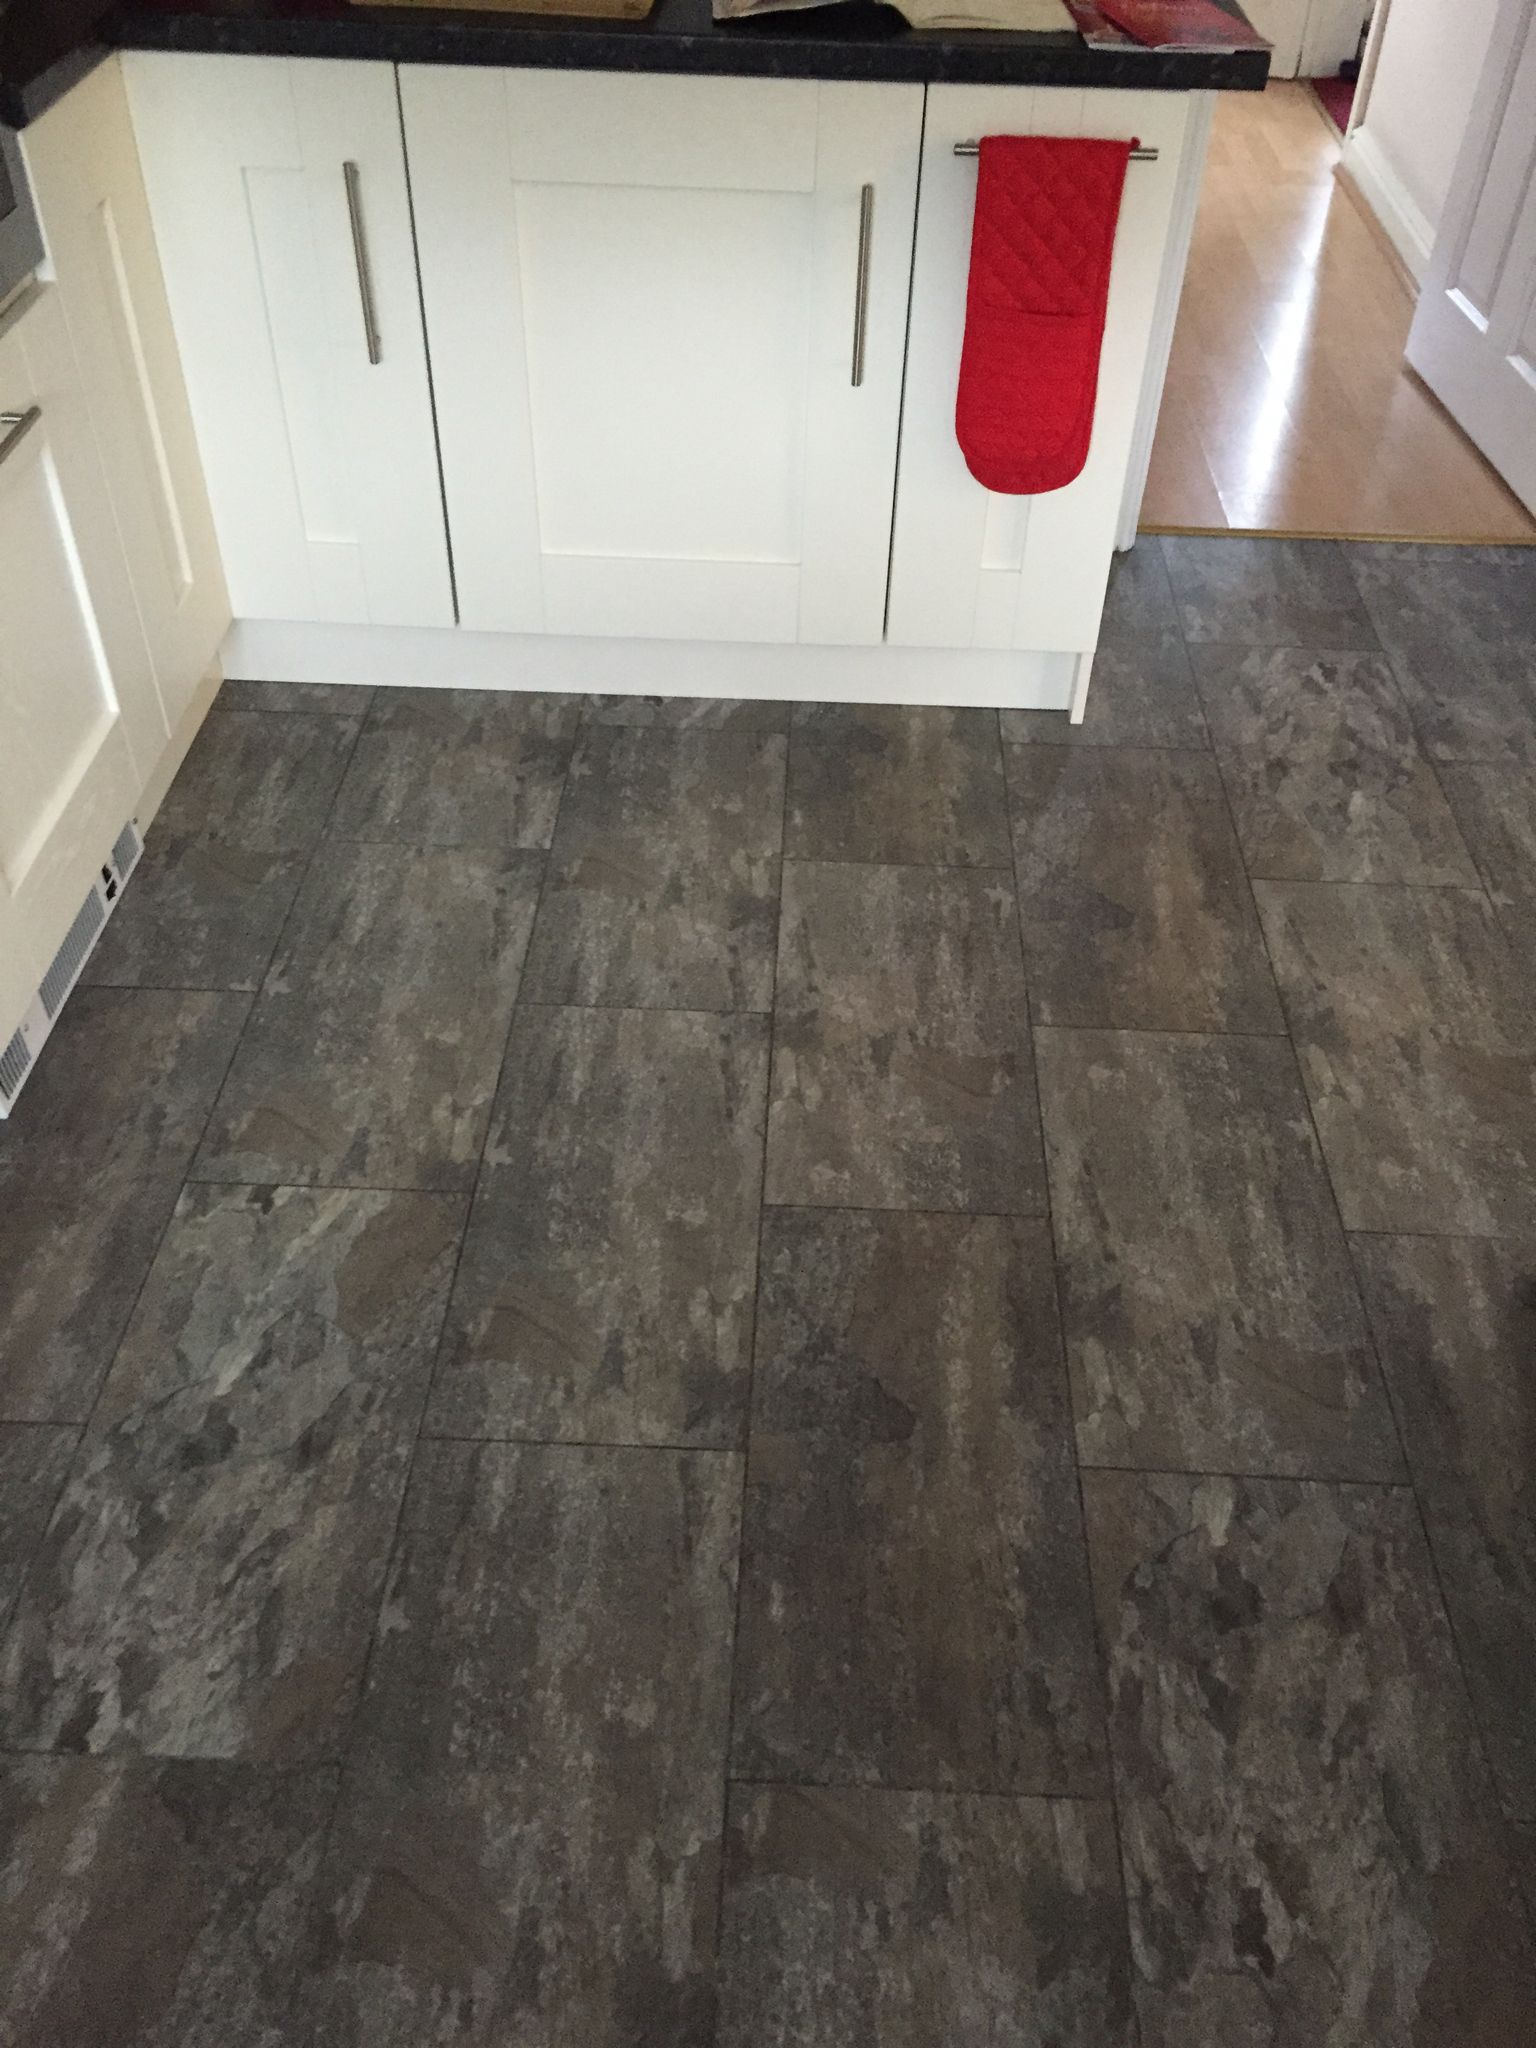 Polyflor Camaro Ocean Slate with a Graphite Grout Strip ...